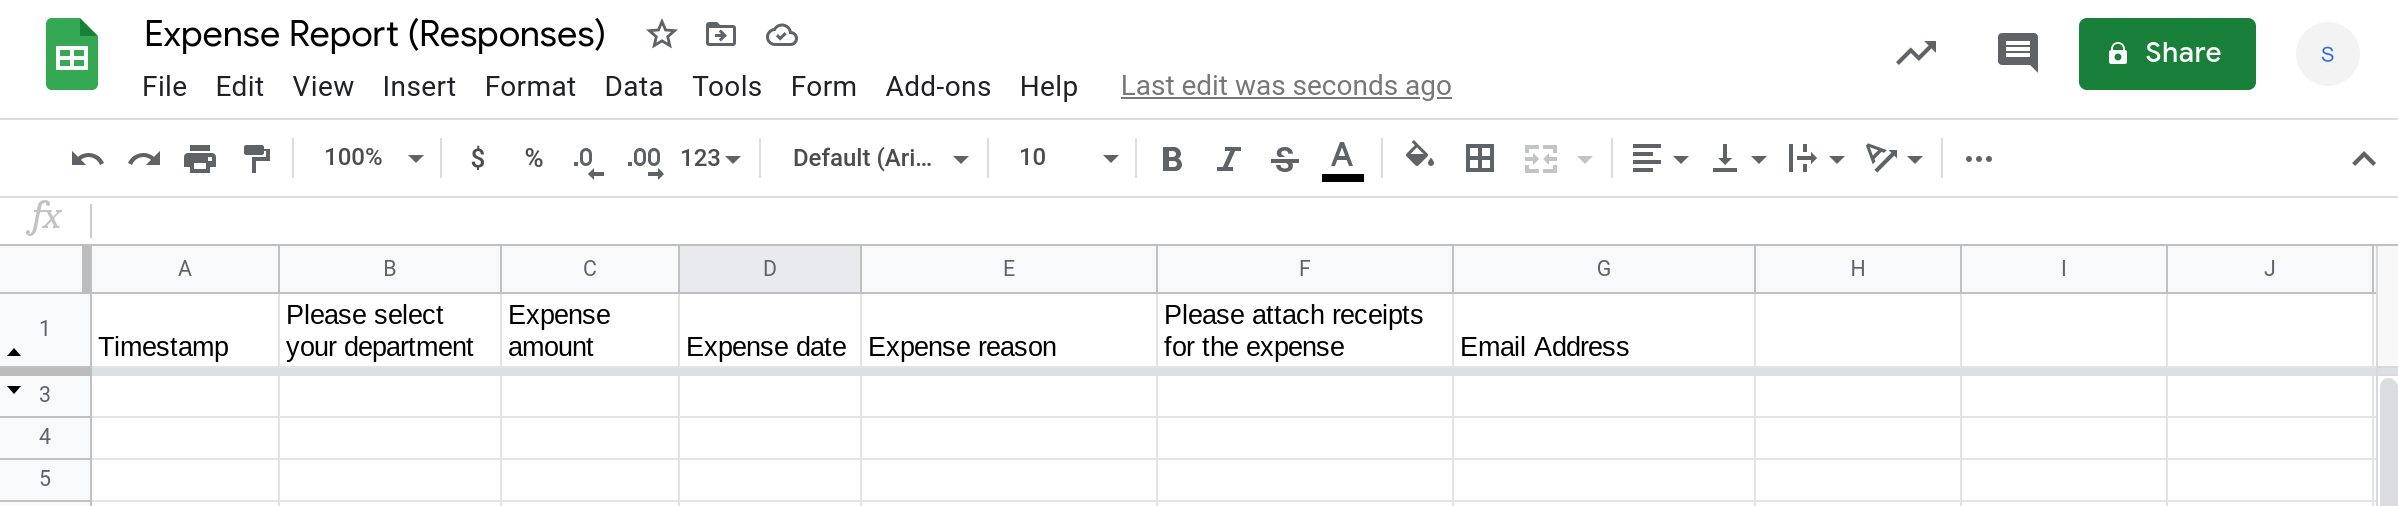 Screenshot of a Google Sheets spreadsheet with columns corresponding to the fields of a Google Form.